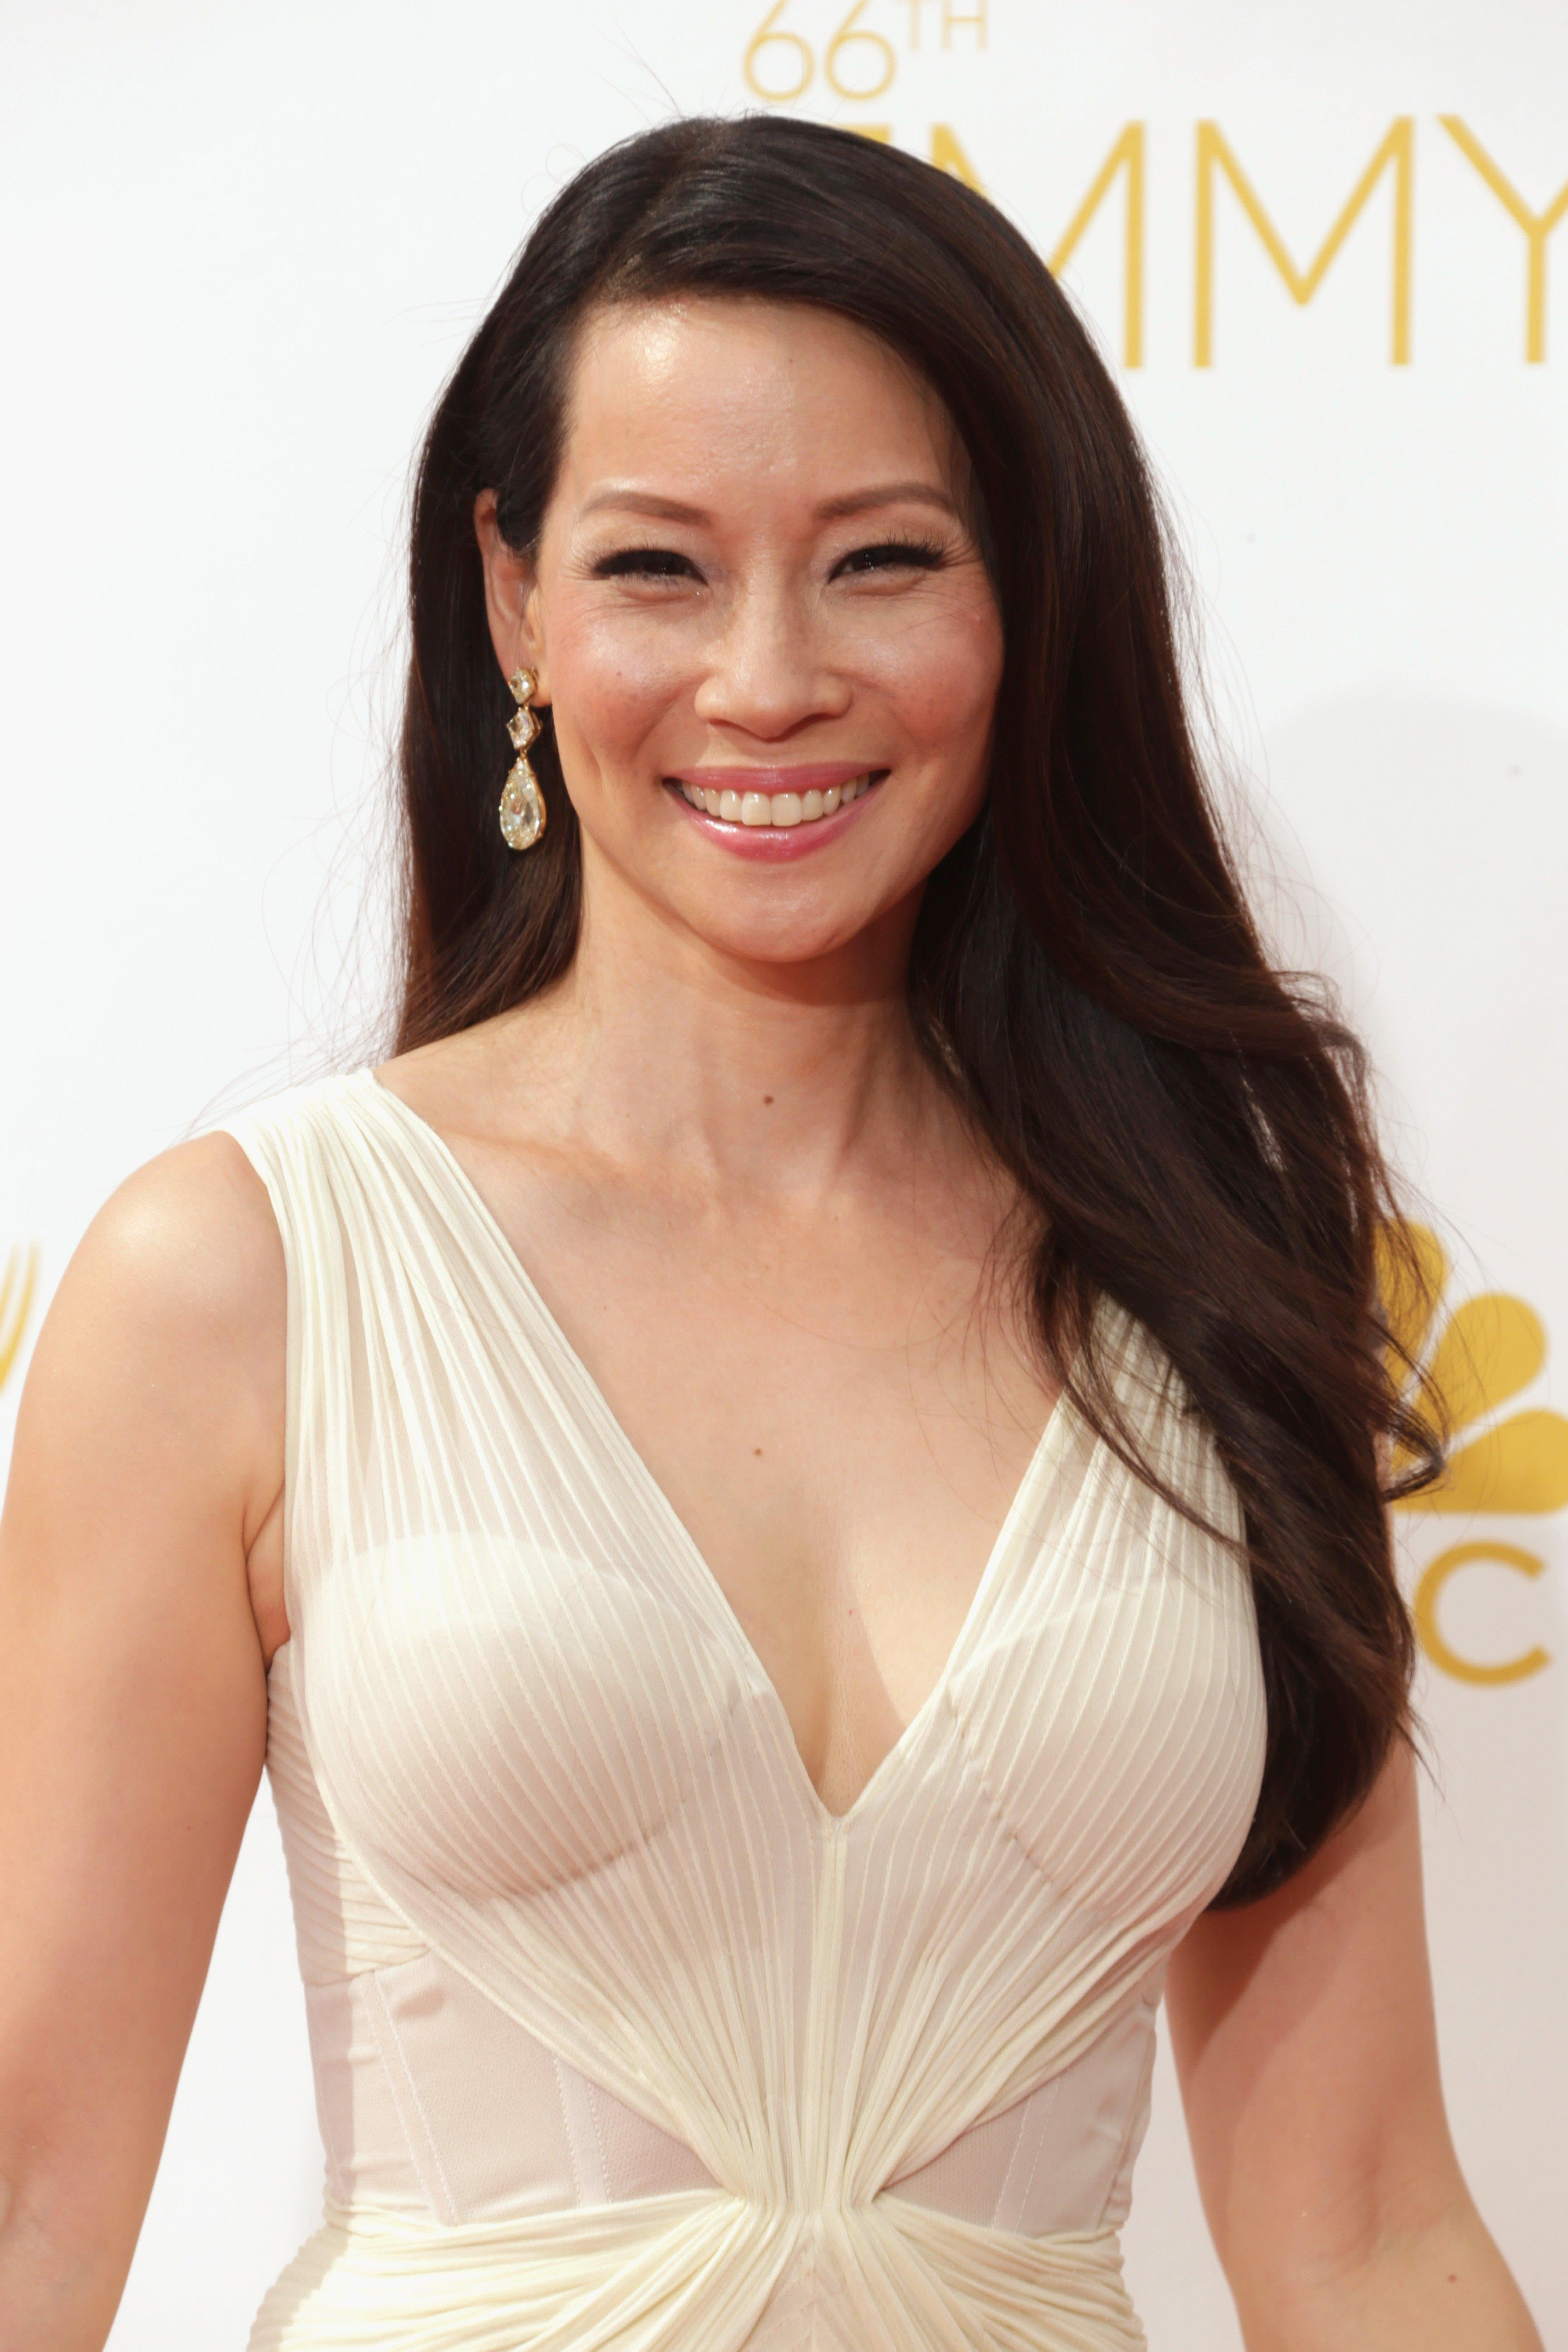 Lucy liu kissing gilds — pic 10